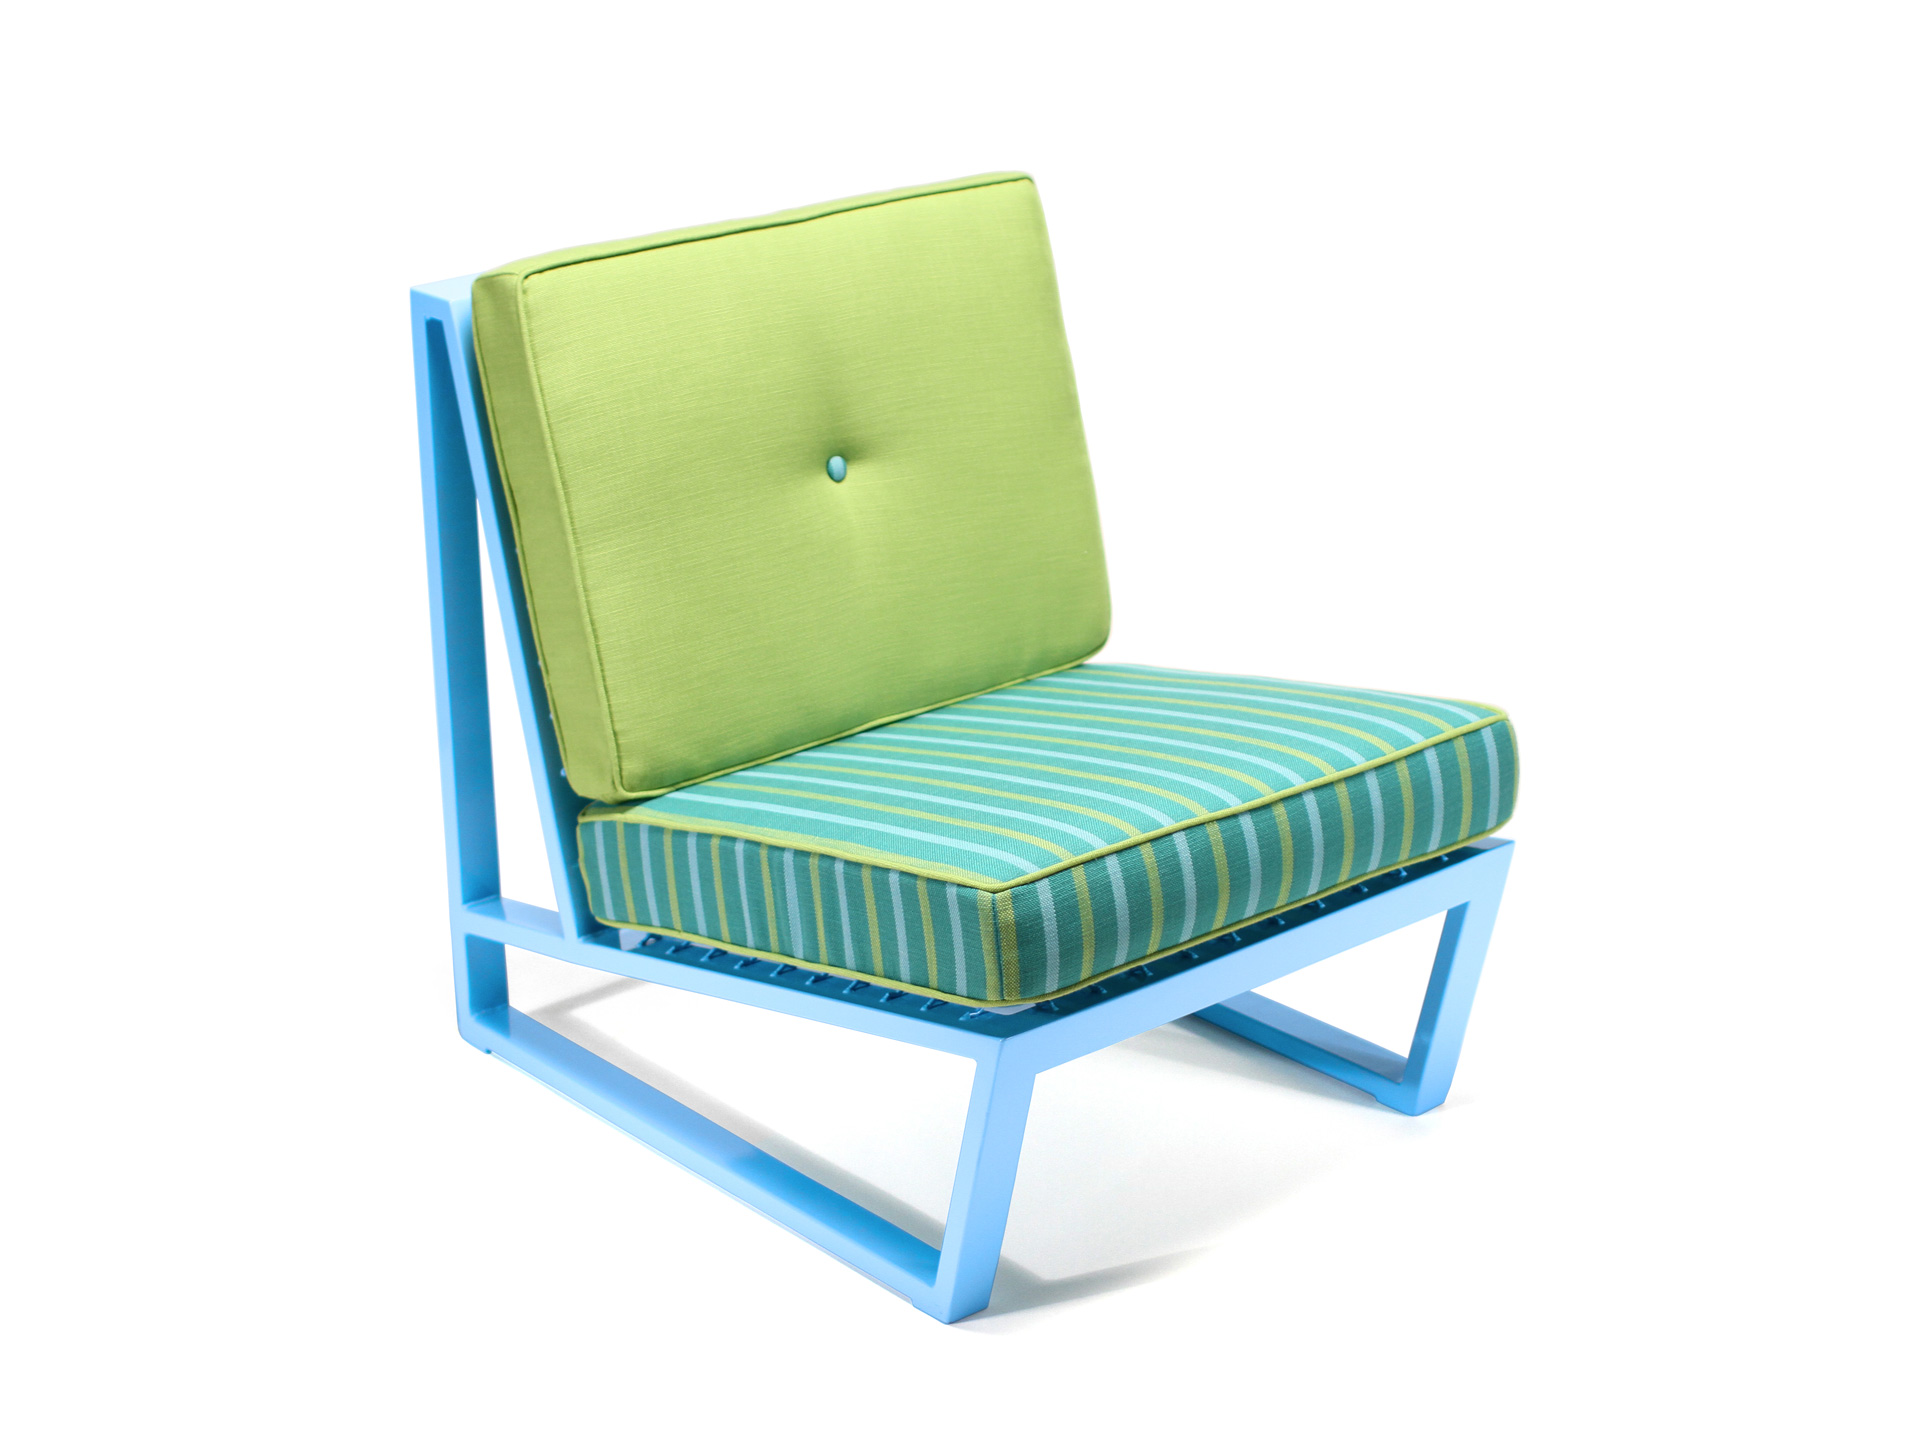 Del Calle chair with green and blue finish and fabric